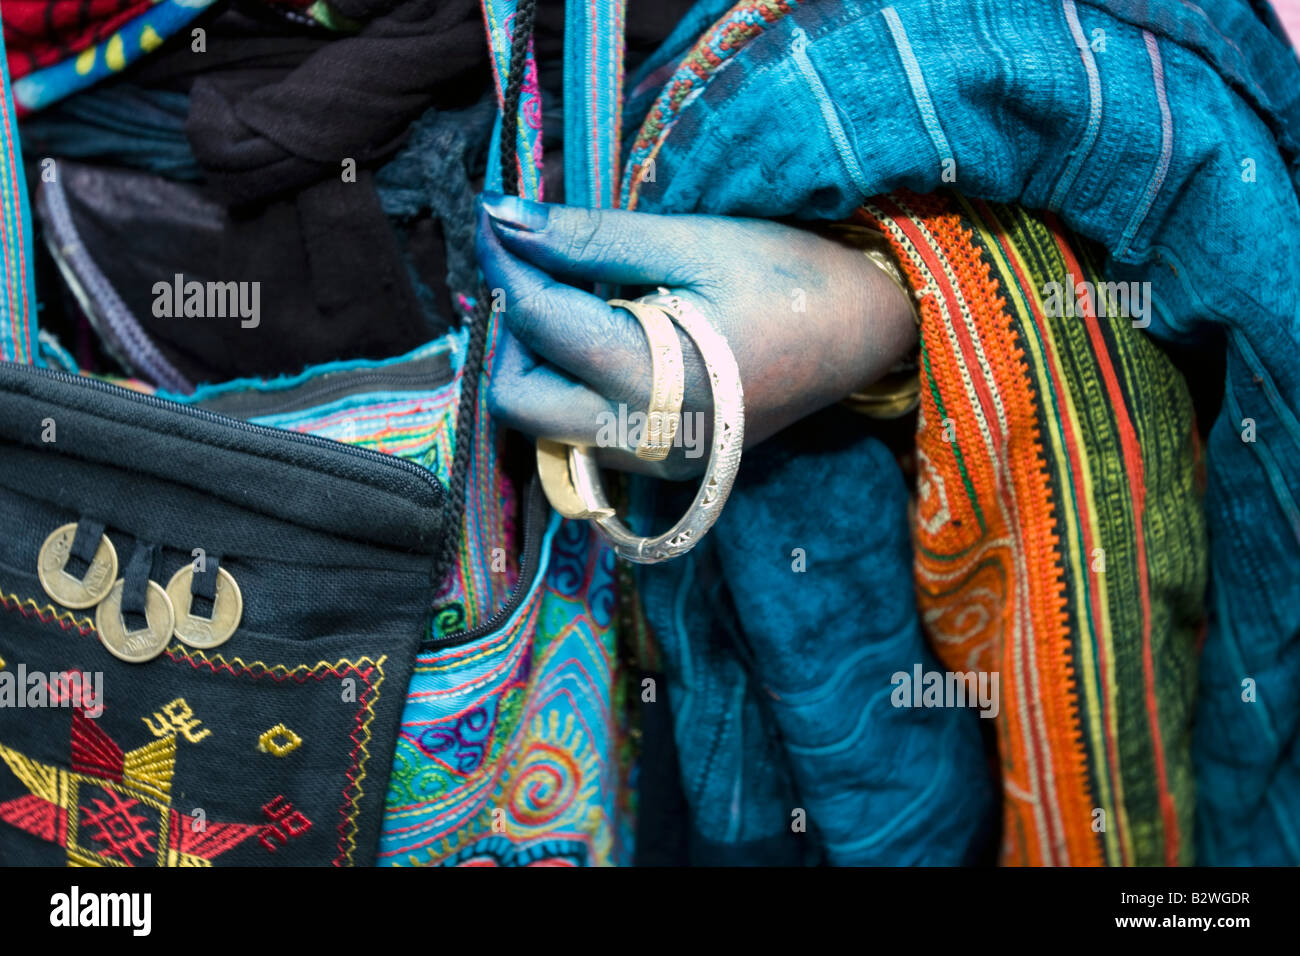 Black Hmong hilltribe woman with blue hands from dyed cloth Sapa Vietnam - Stock Image